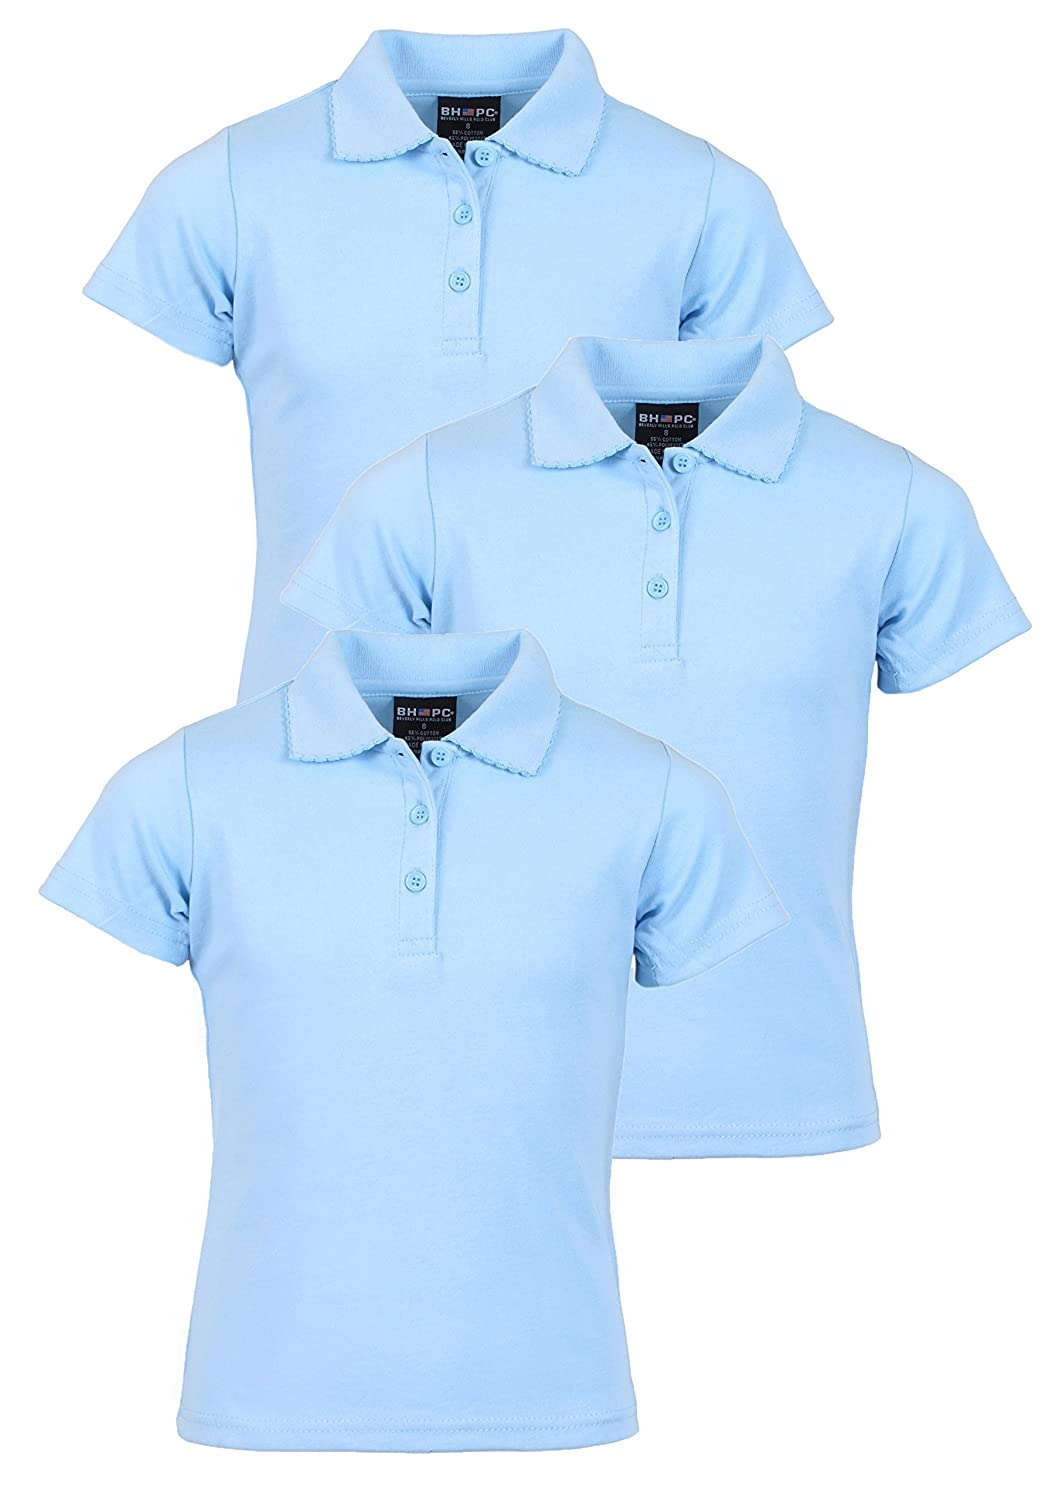 Beverly Hills Polo Club 3 Pack of Girls' Short Sleeve Interlock Uniform Polo Shirts